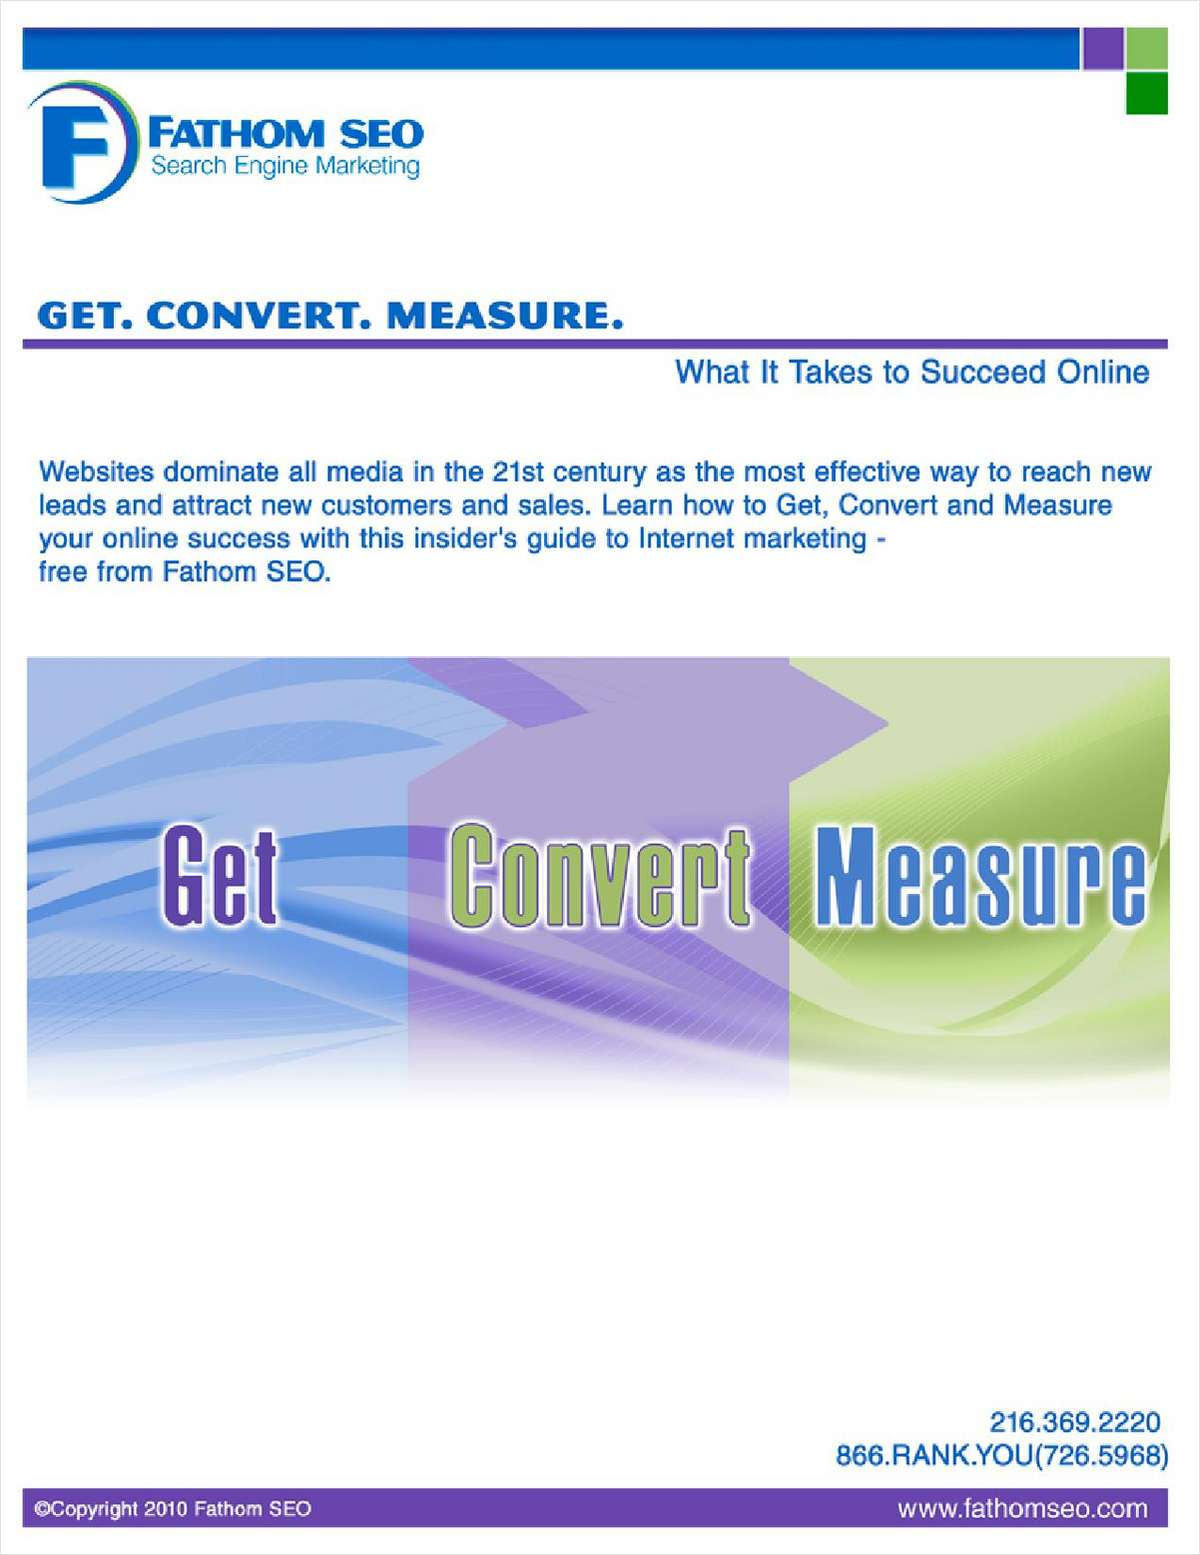 Insider's Guide to Internet Marketing: Get. Convert. Measure.